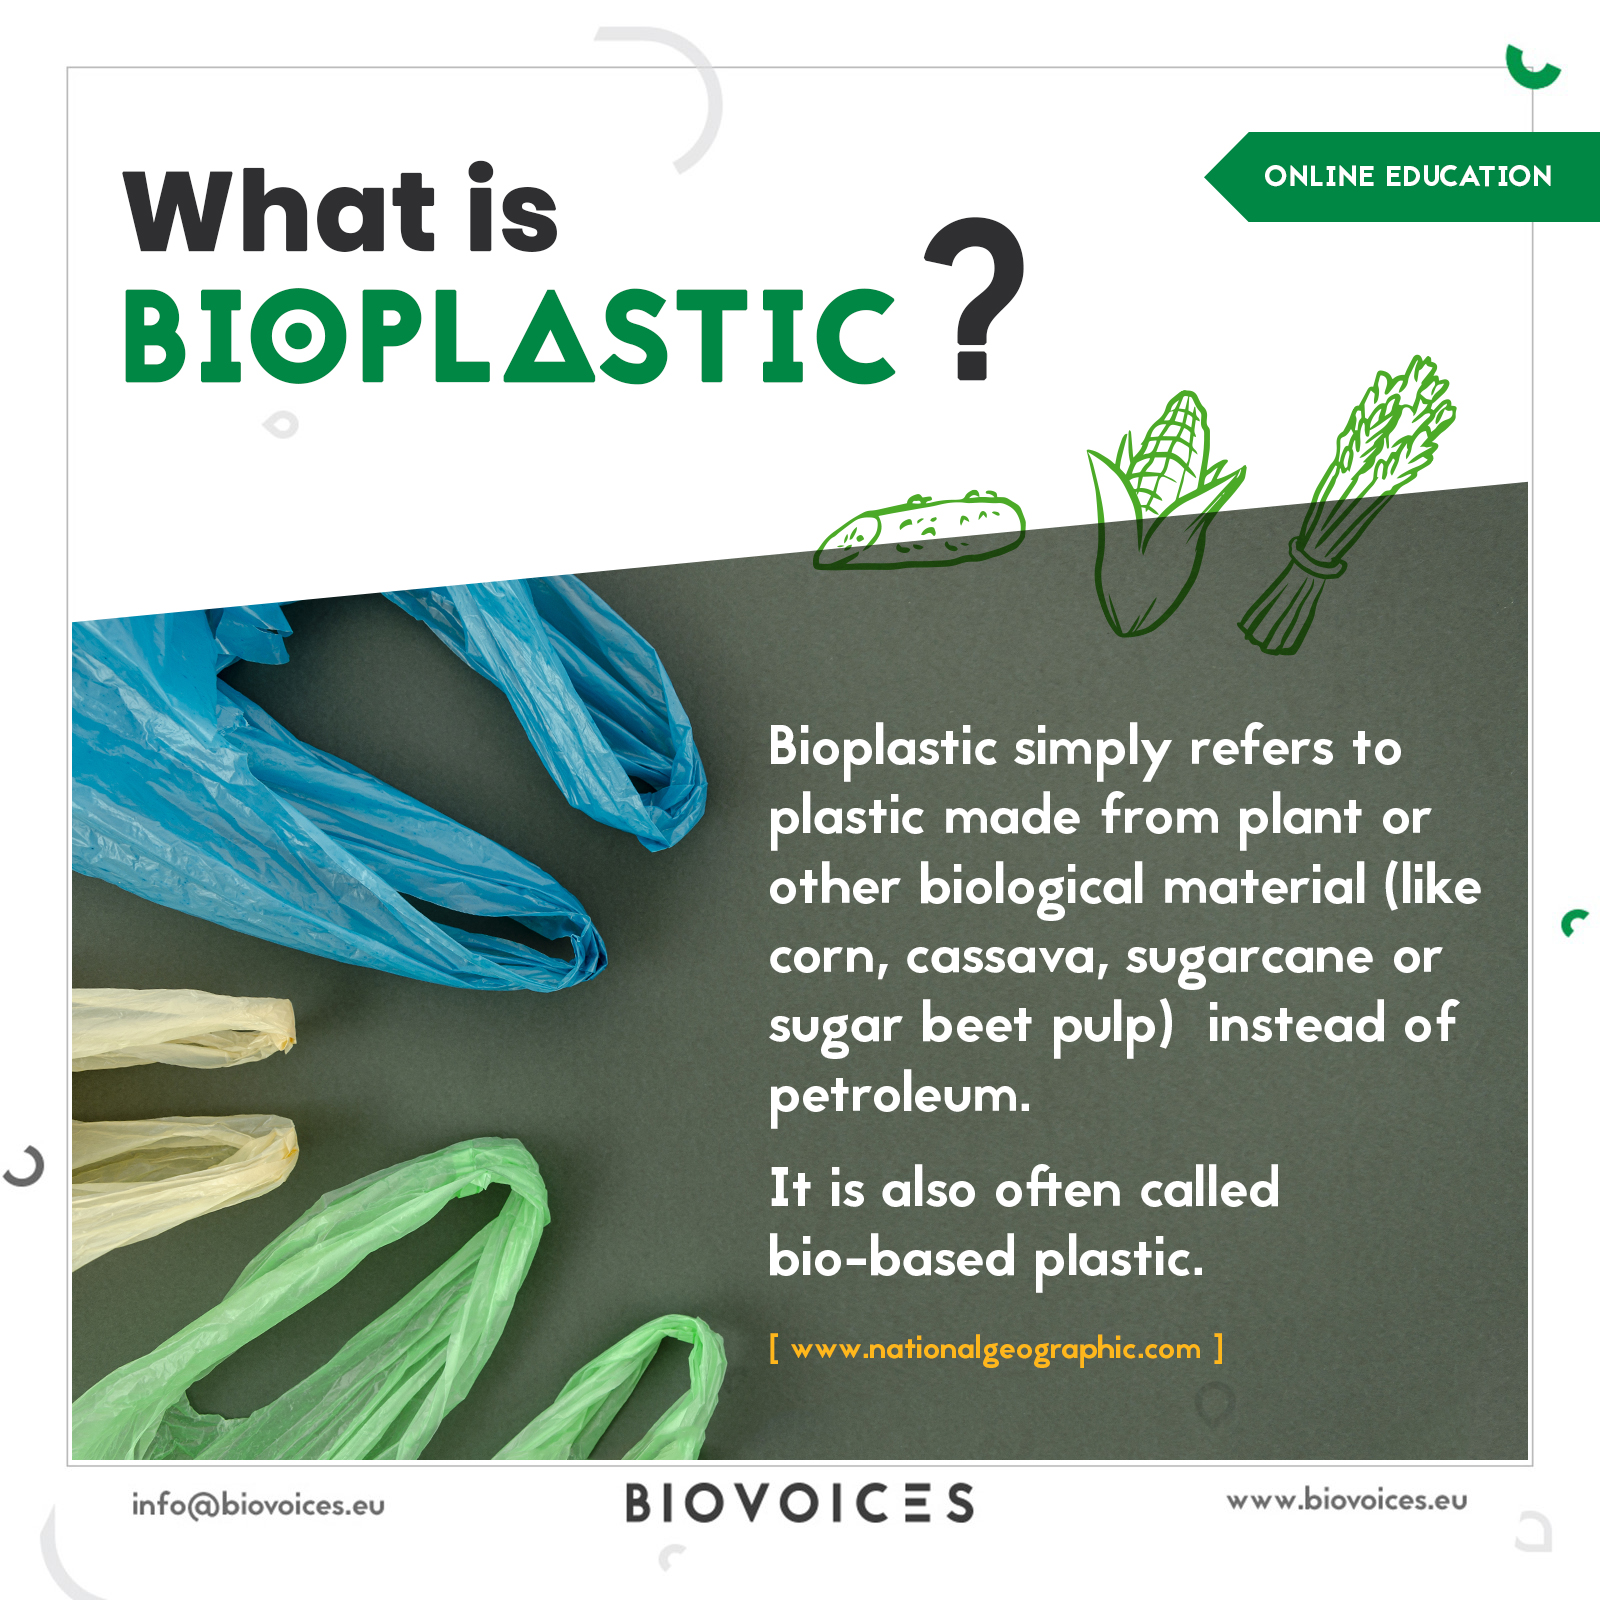 What is bioplastic?